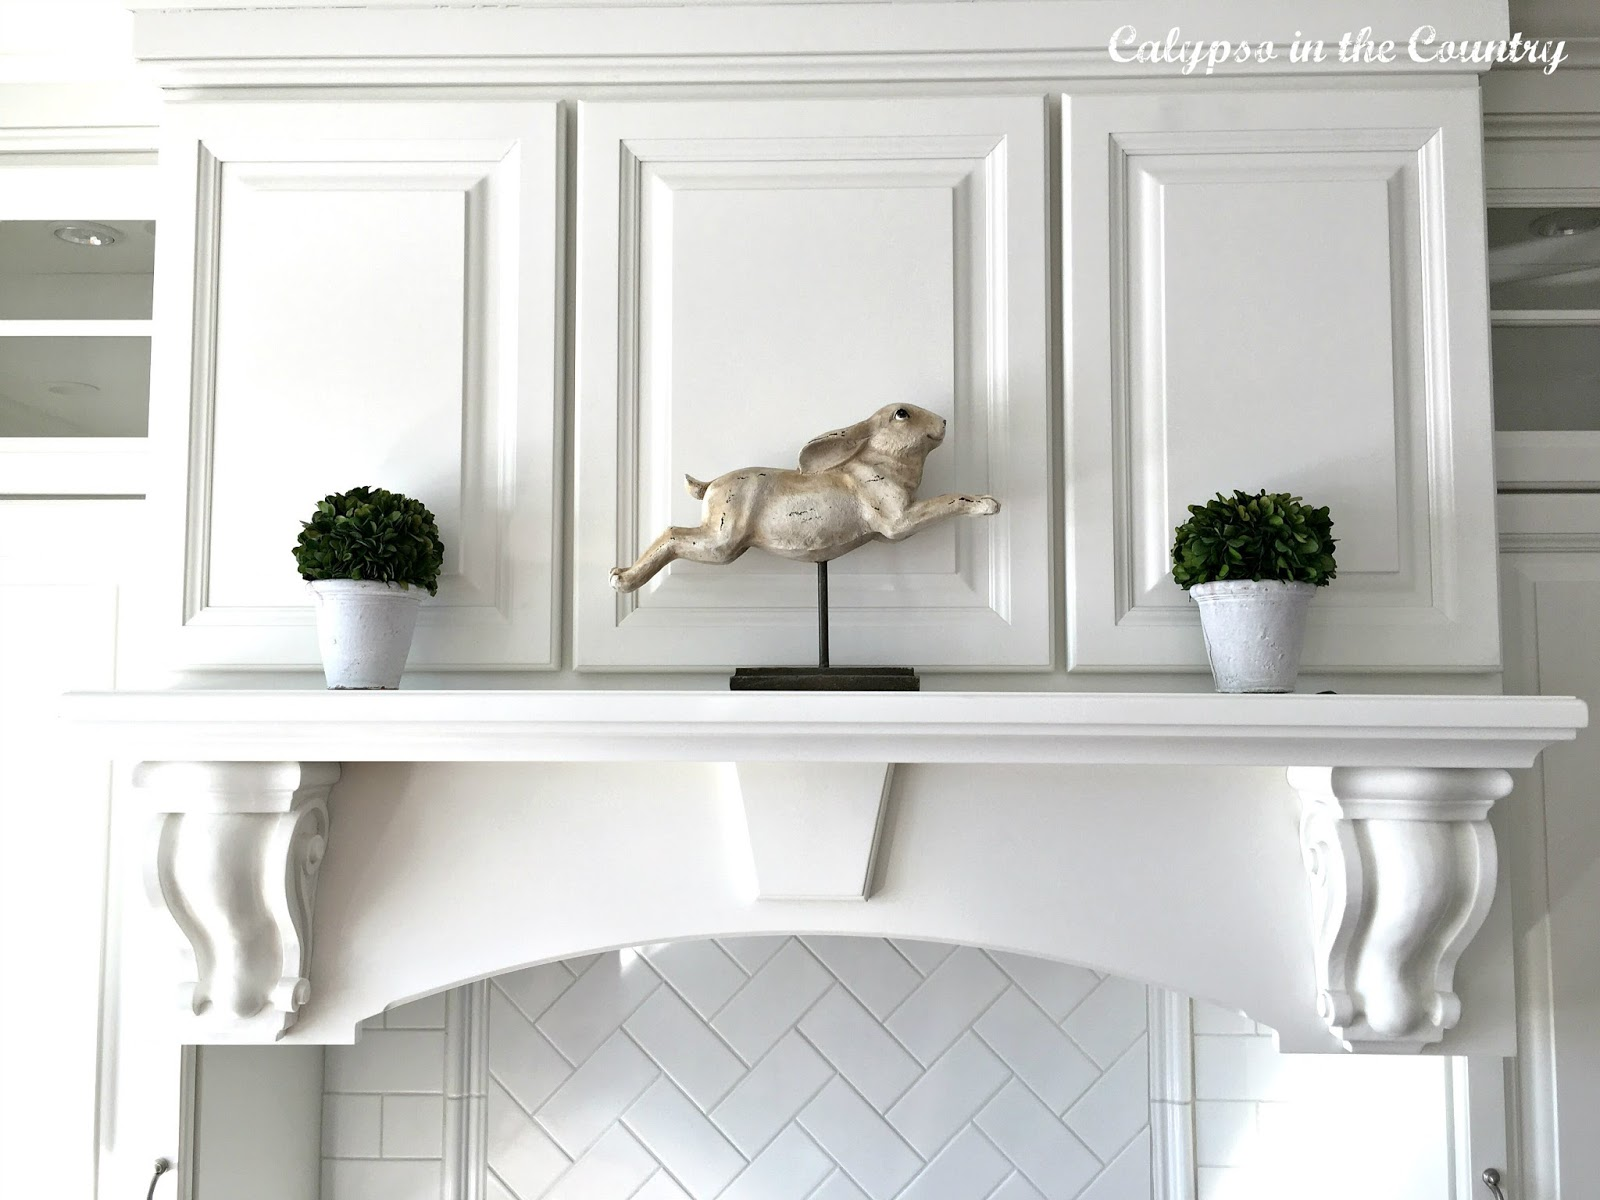 Bunny decor on stove mantel